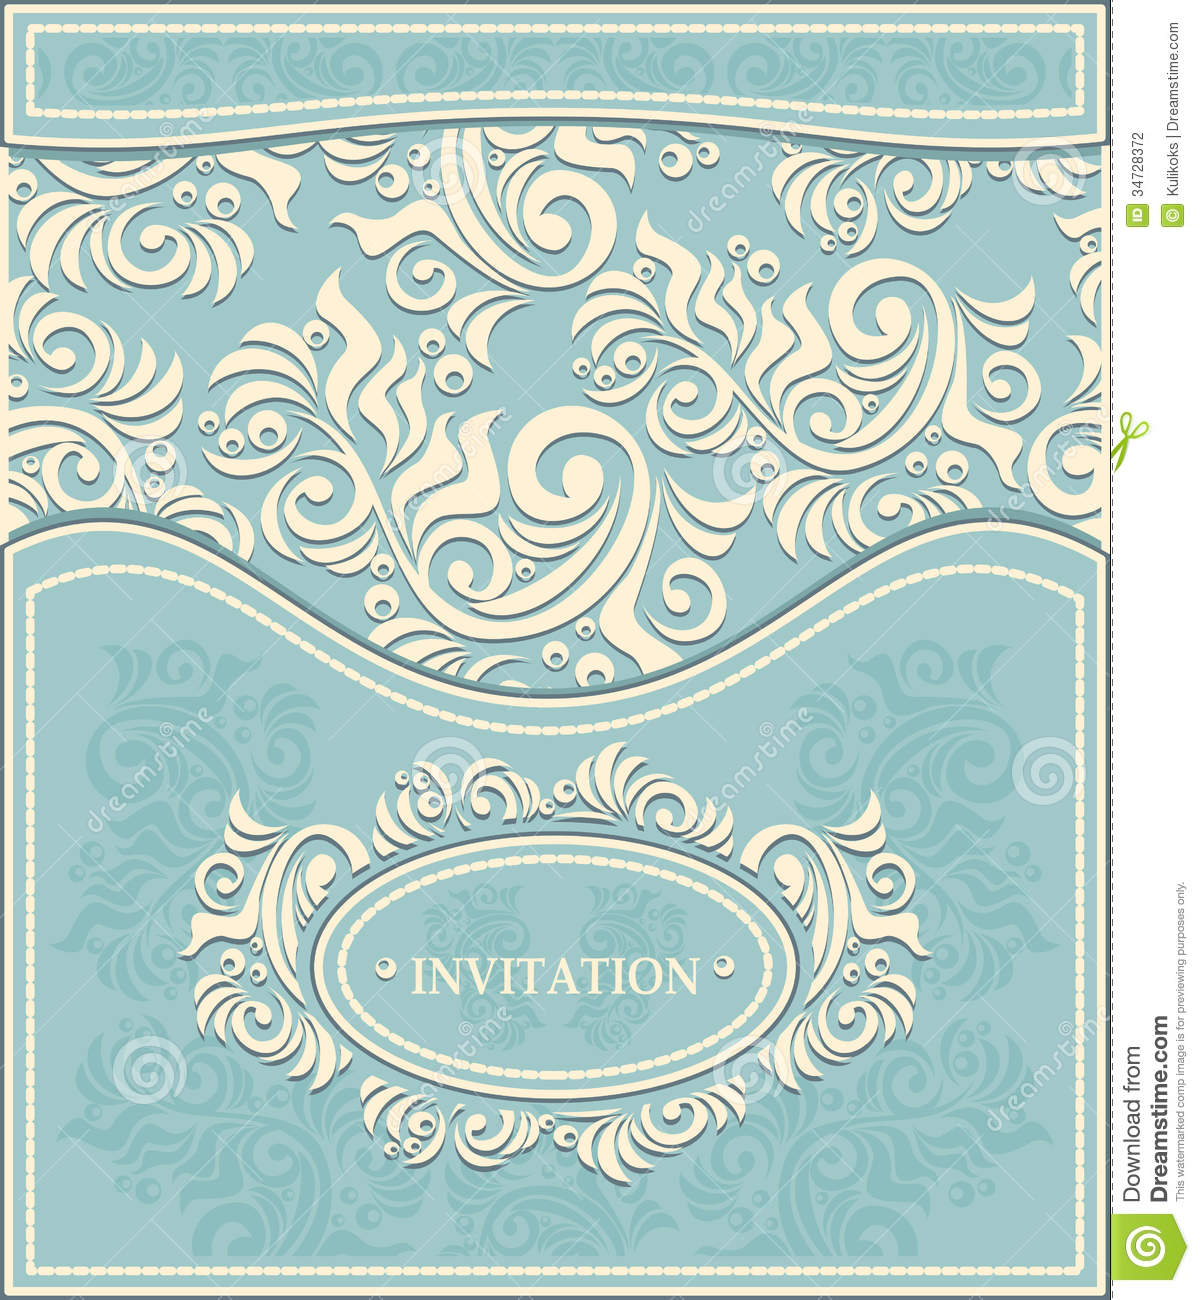 Invitation Background Images with adorable invitations example